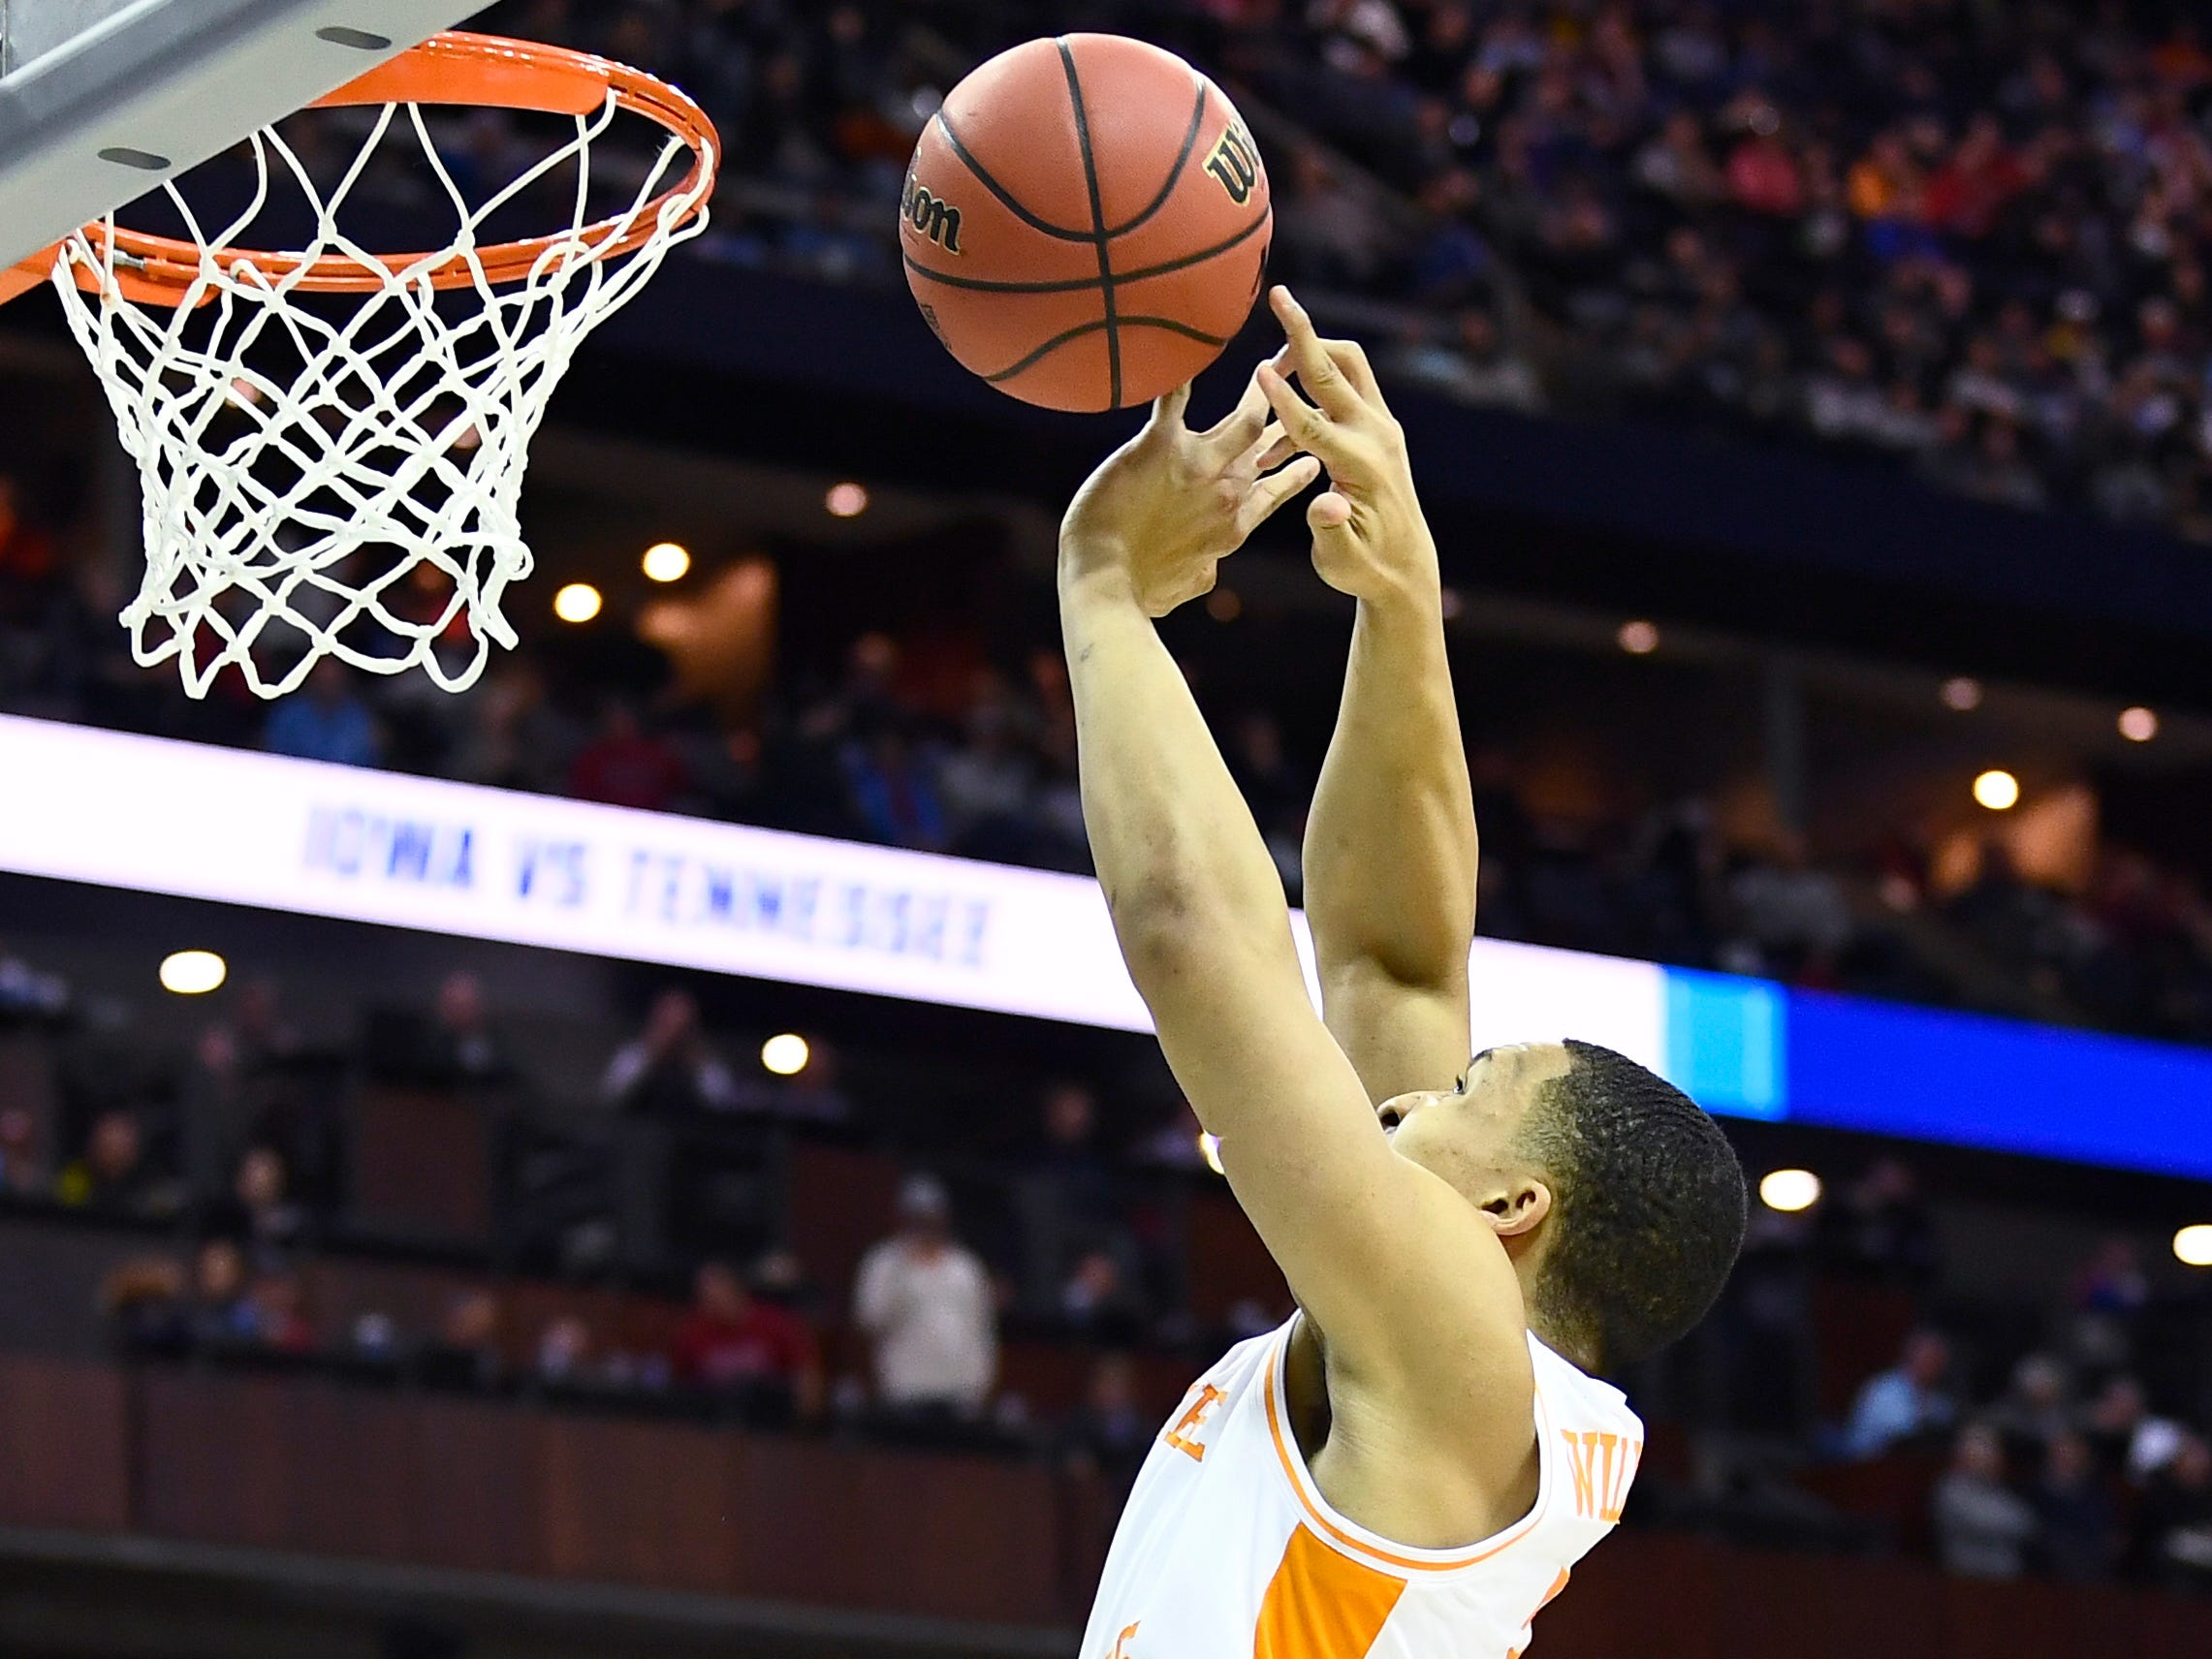 Tennessee forward Grant Williams (2) goes in for a shot during the second half of the game against the Iowa Hawkeyes in the second round of the NCAA Tournament at Nationwide Arena in Columbus, Ohio, Sunday, March 24, 2019.